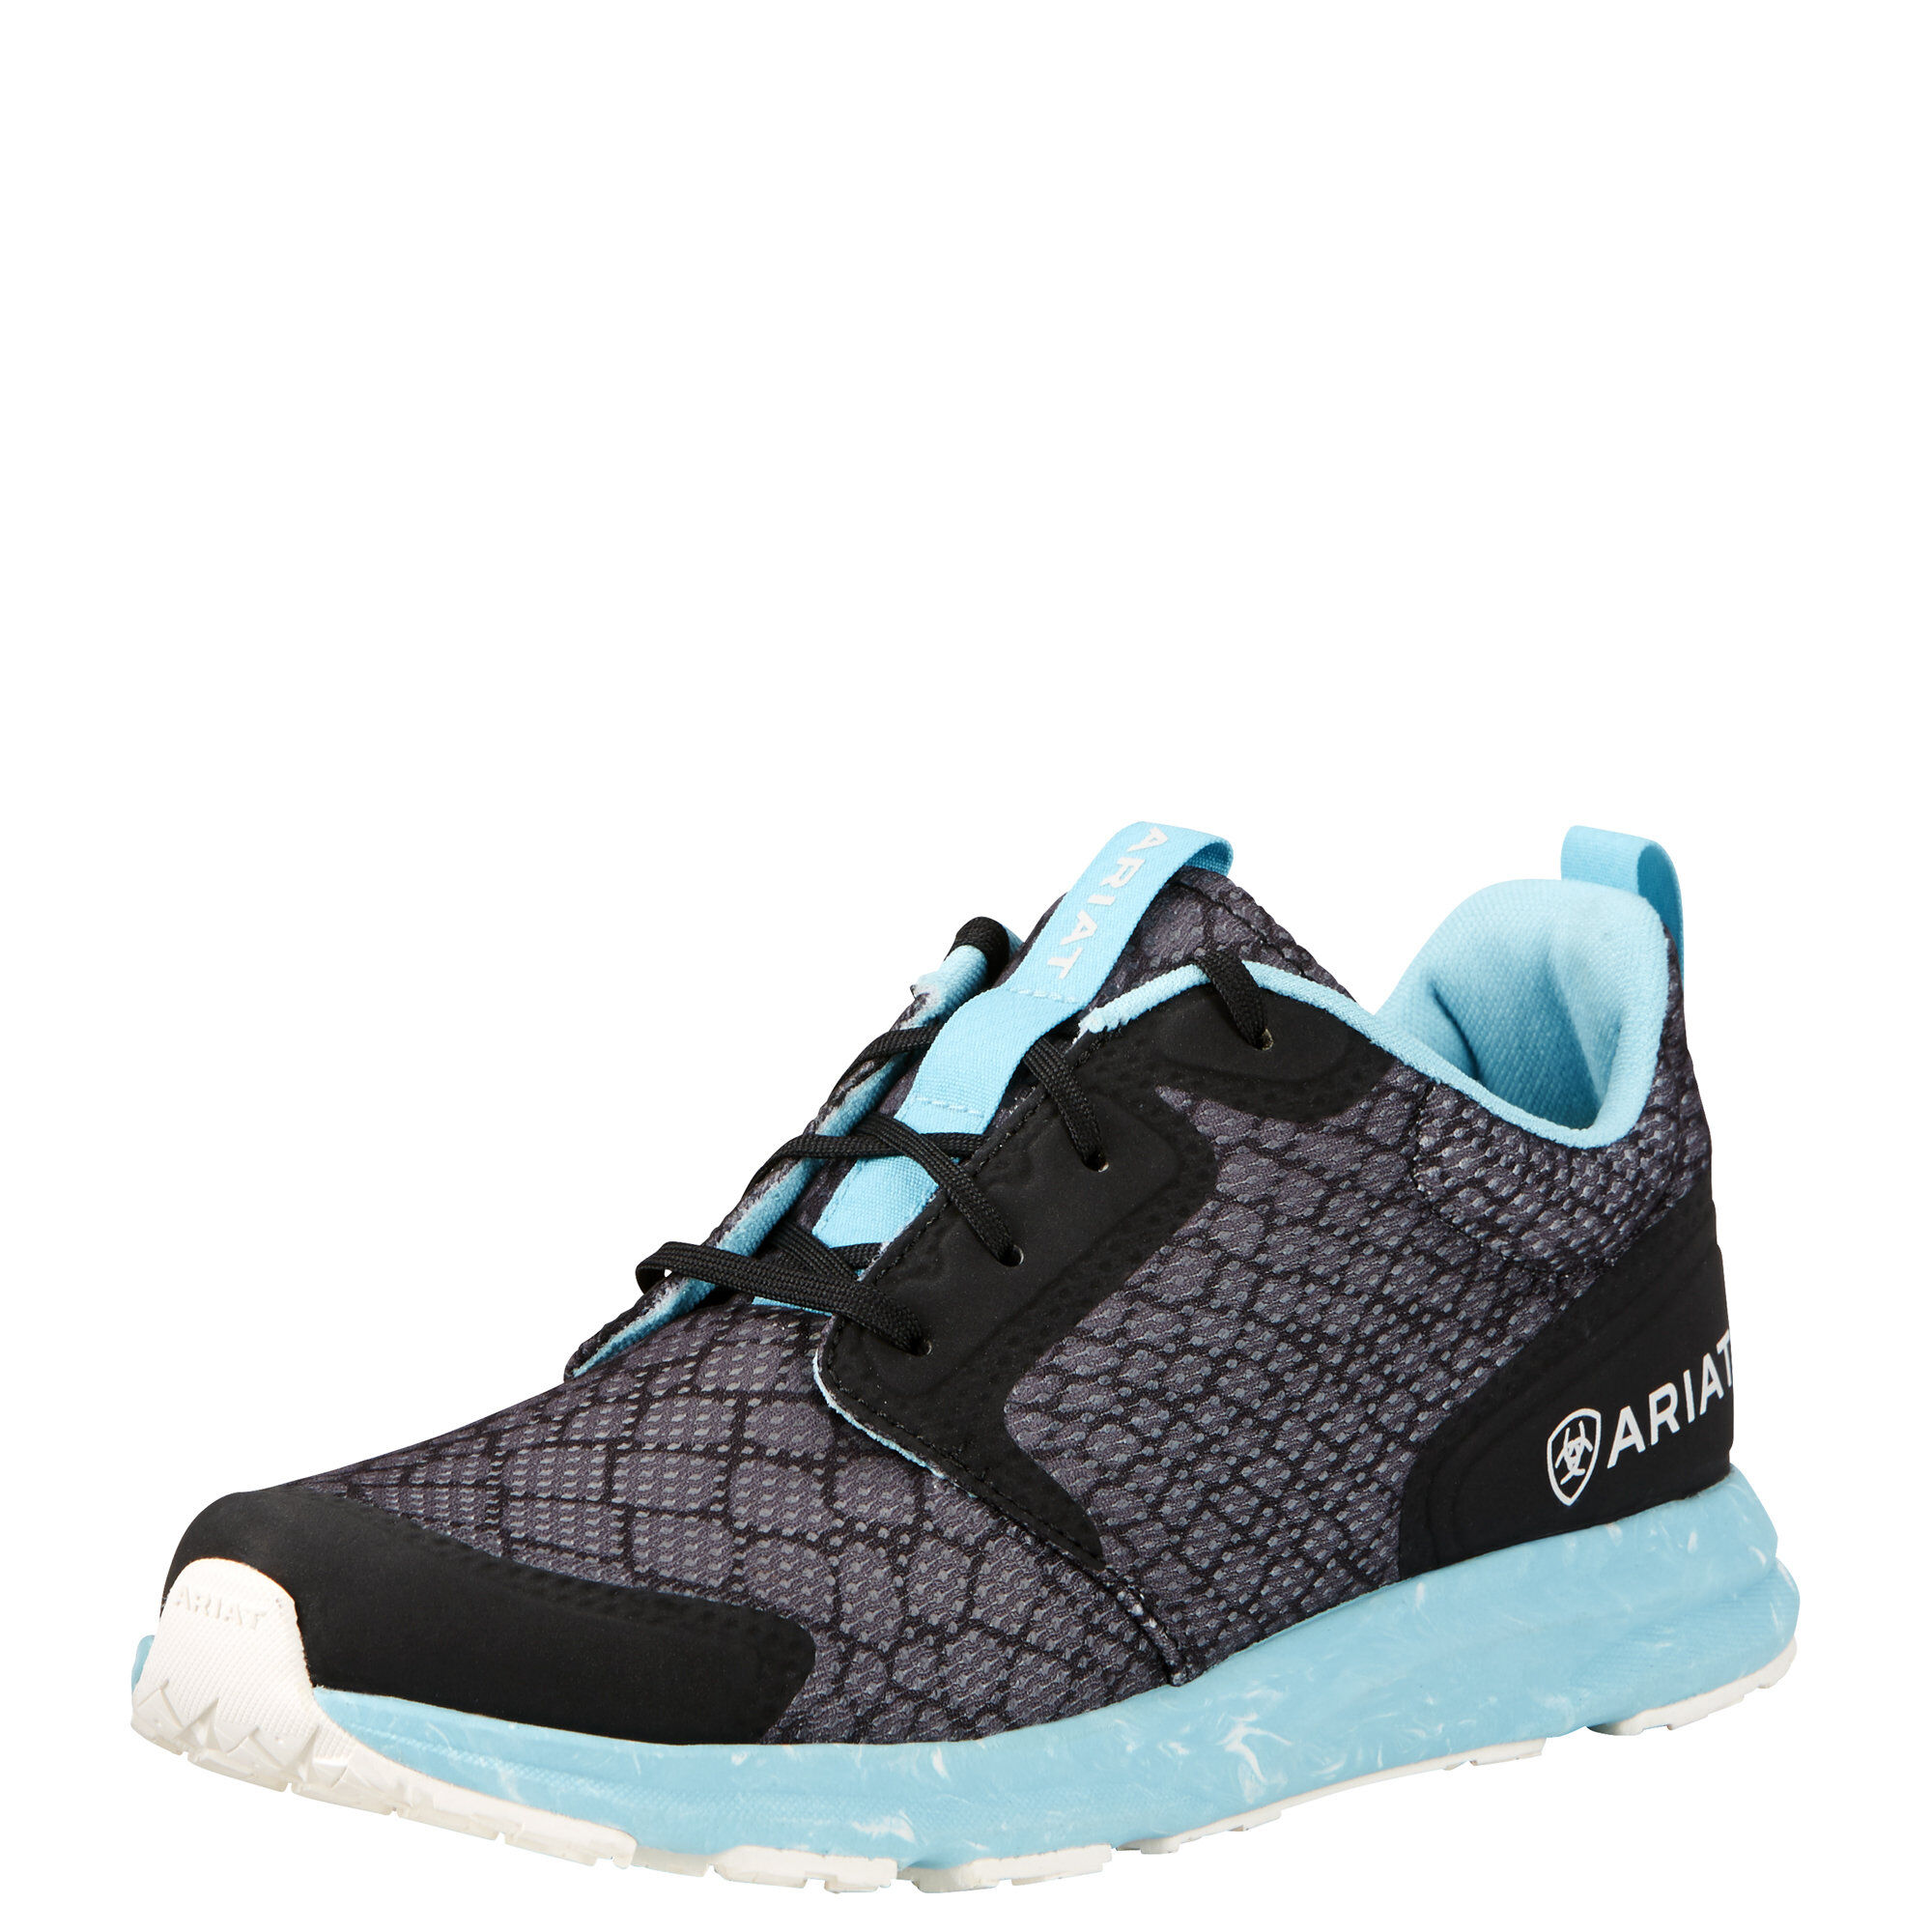 comfortable for of travel perfect lora trip your next walking shoes pages comforter